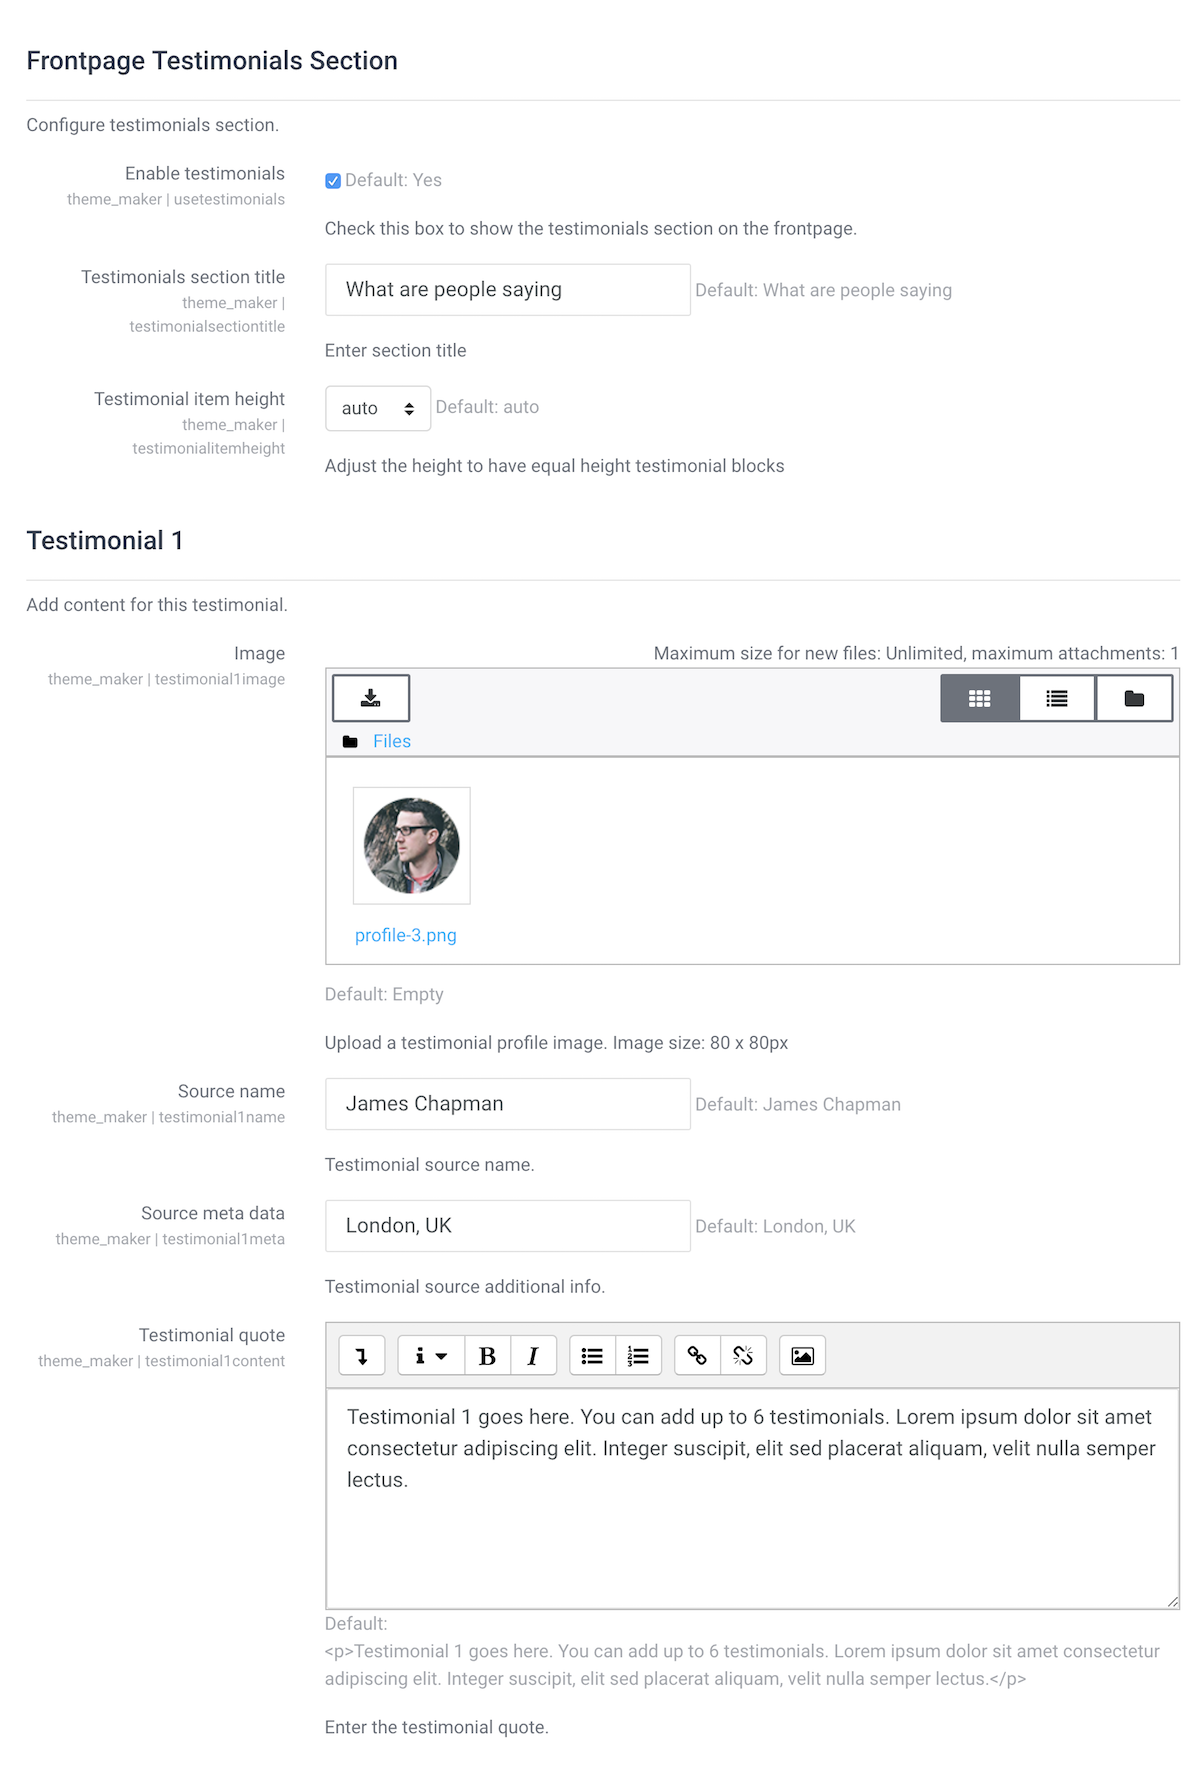 moodle-theme-maker-testimonials-settings